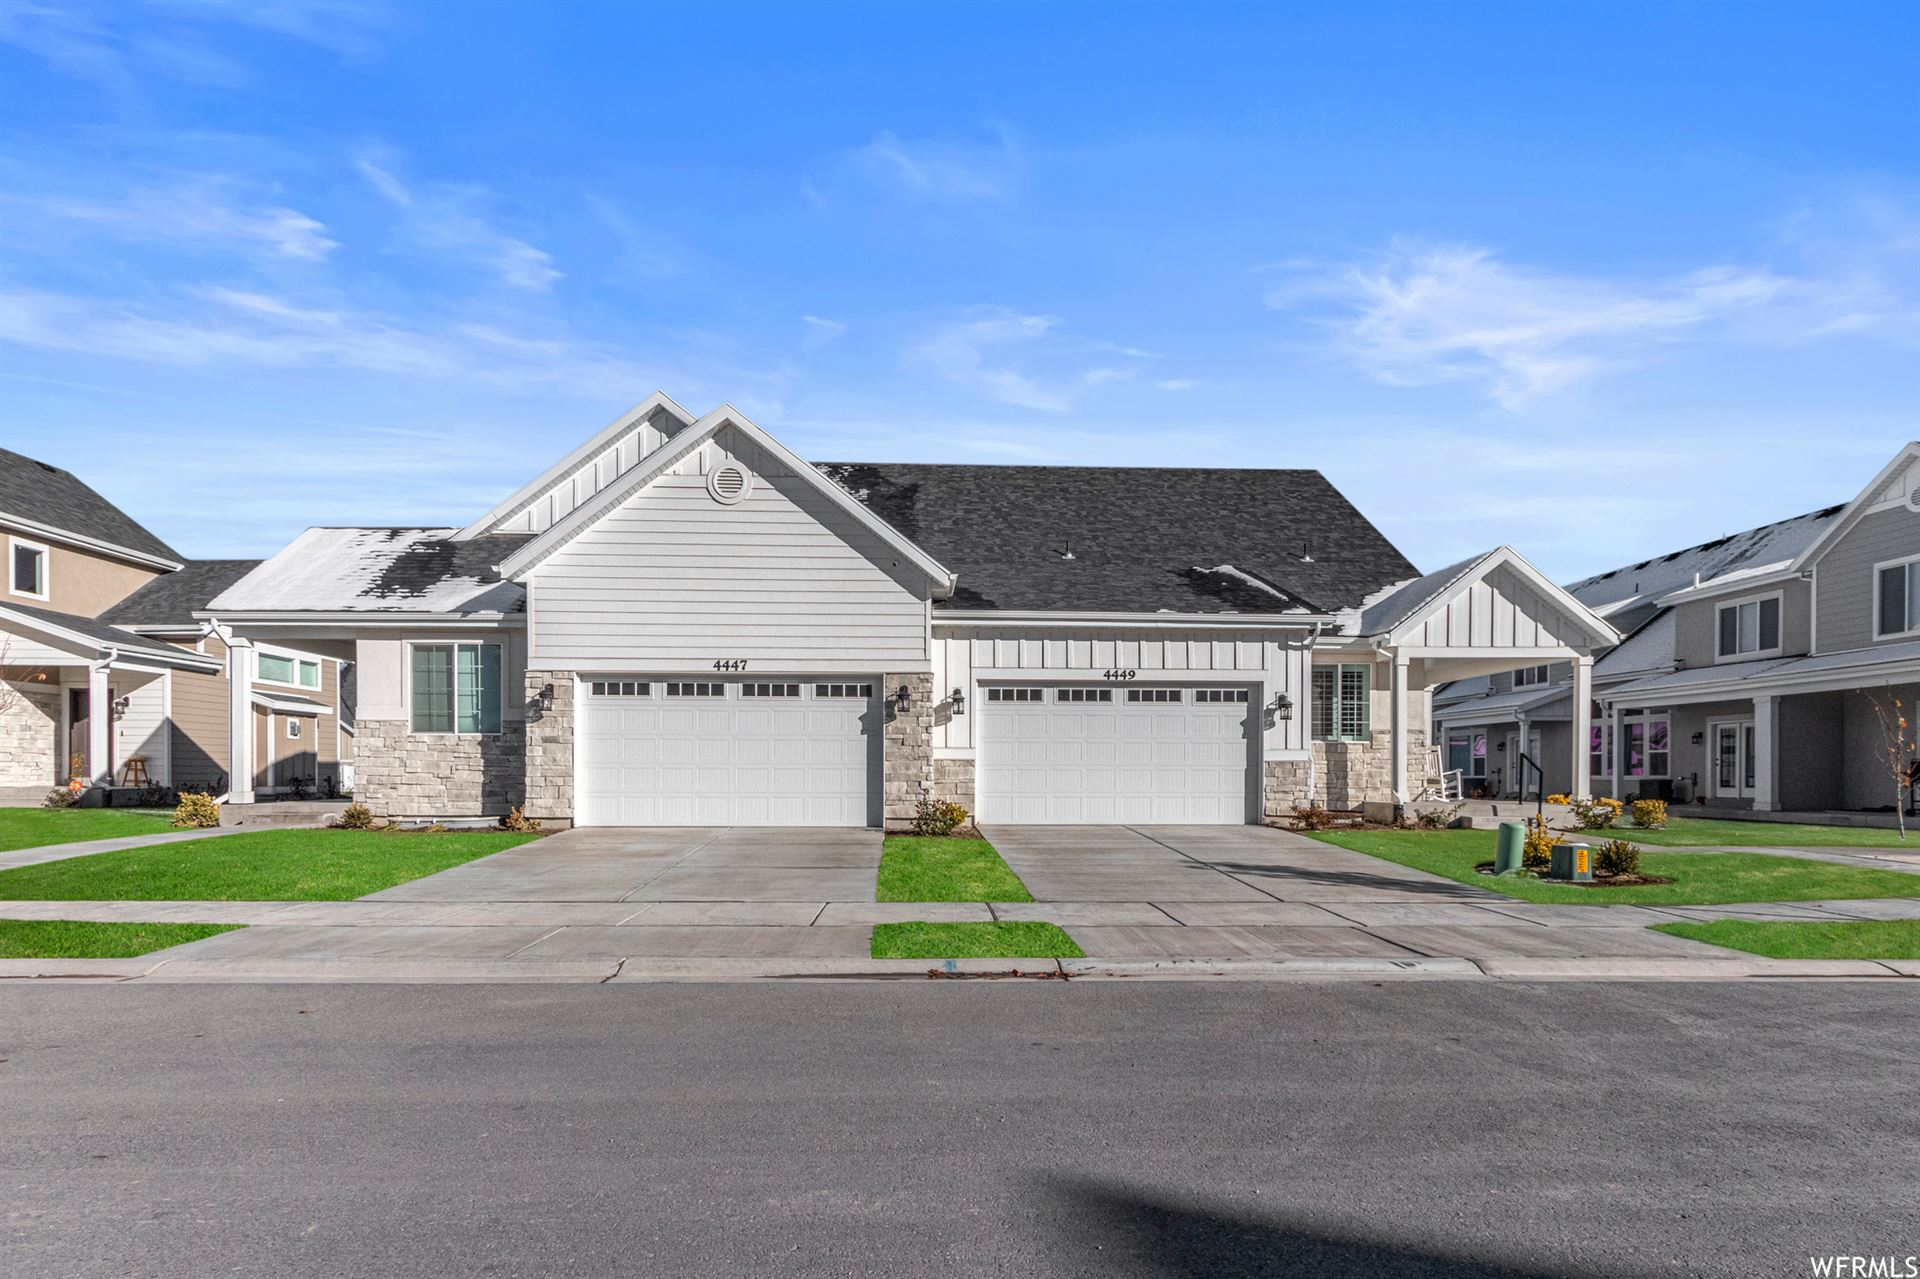 Photo of 541 E FASHION CREEK CT S #3, Murray, UT 84107 (MLS # 1703913)